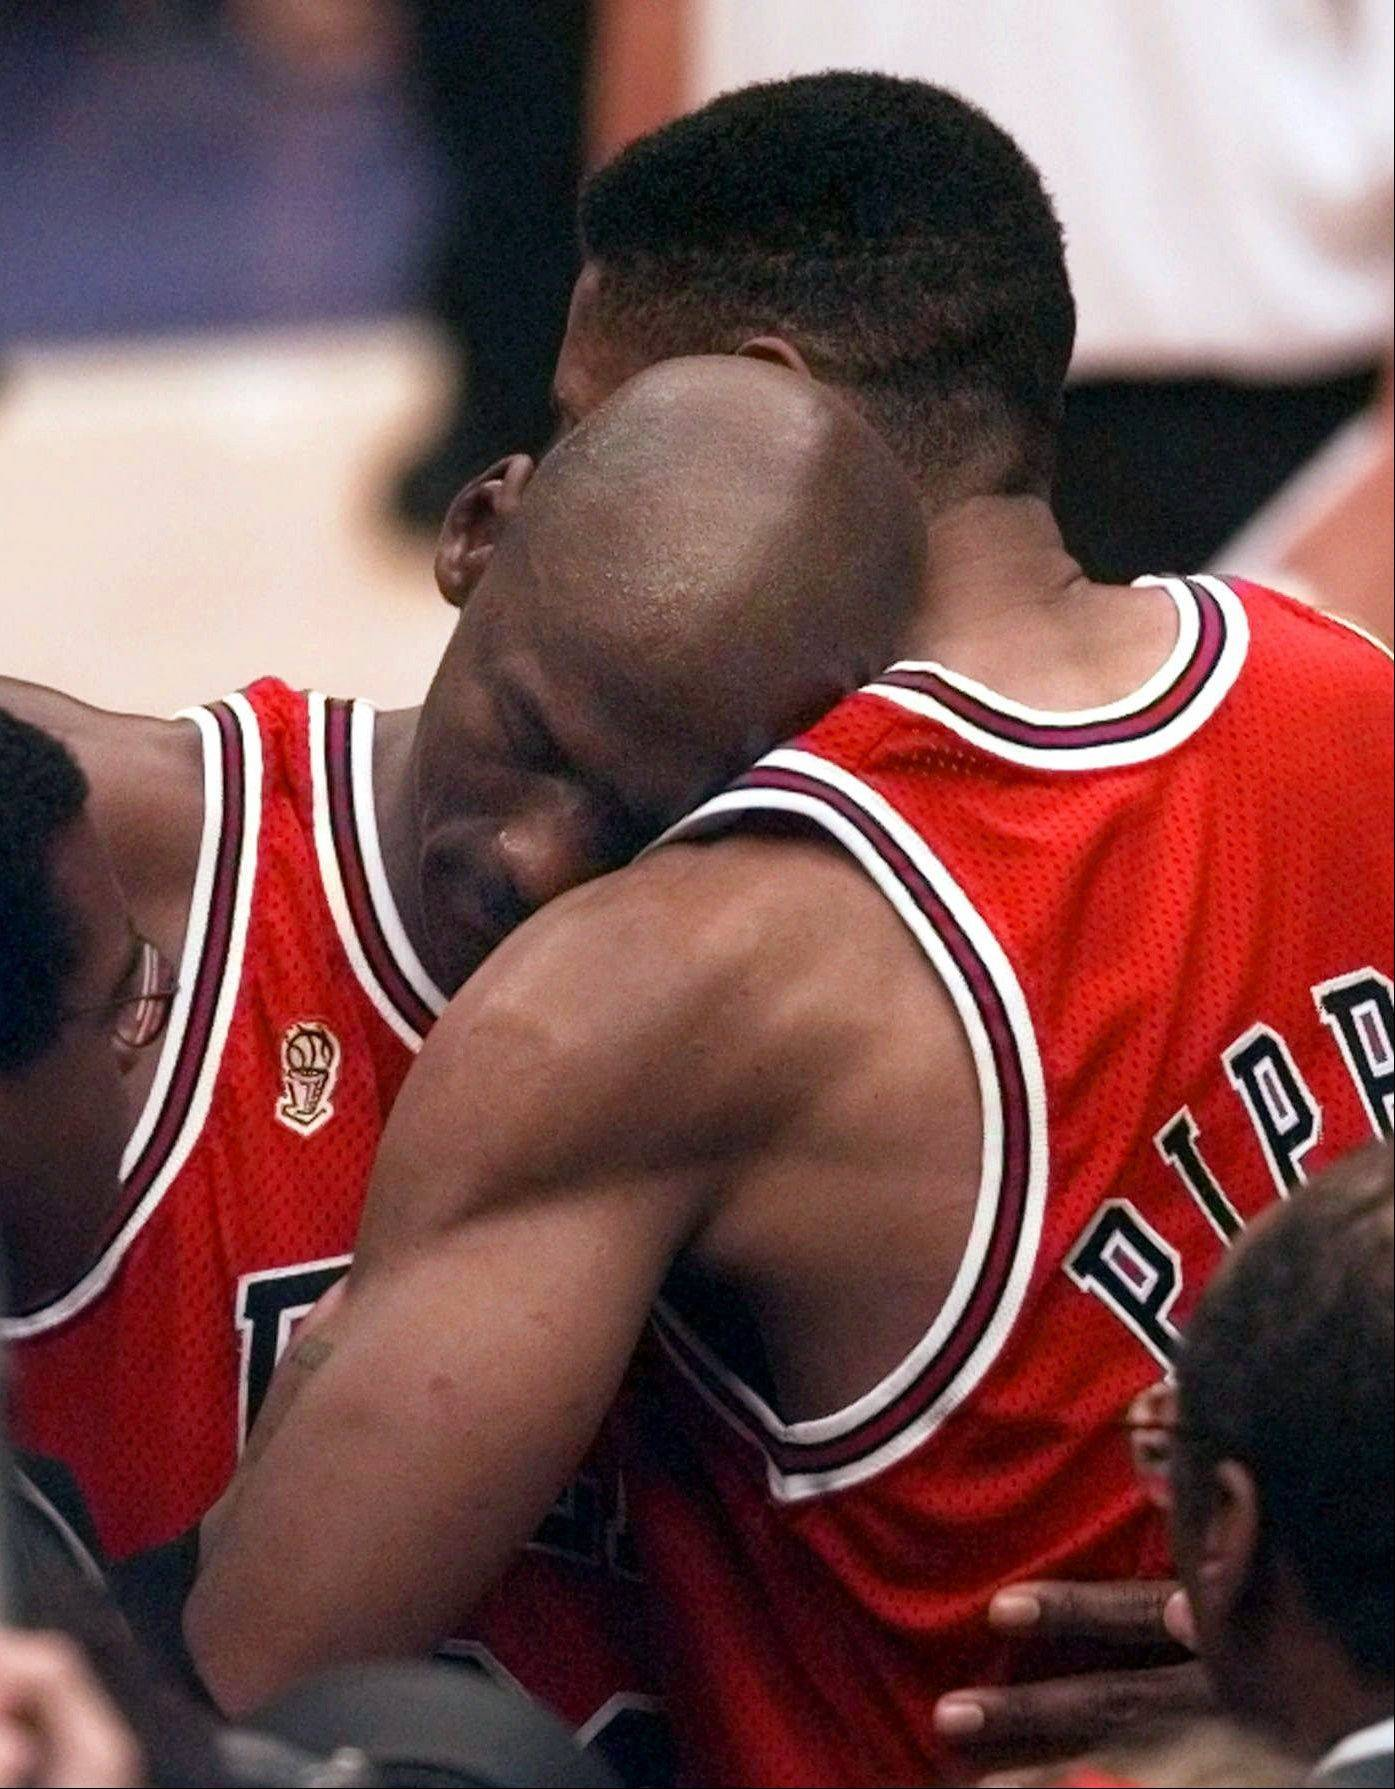 Bulls guard Michael Jordan collapses in the arms of teammate Scottie Pippen, right, at the end of Game 5 of the NBA Finals against the Utah Jazz in 1997, in Salt Lake City. Jordan, fighting flu-like symptoms, scored 38 points to help the Bulls win the game. Jordan gave his shoes to a ball boy, who is now putting them up for auction.